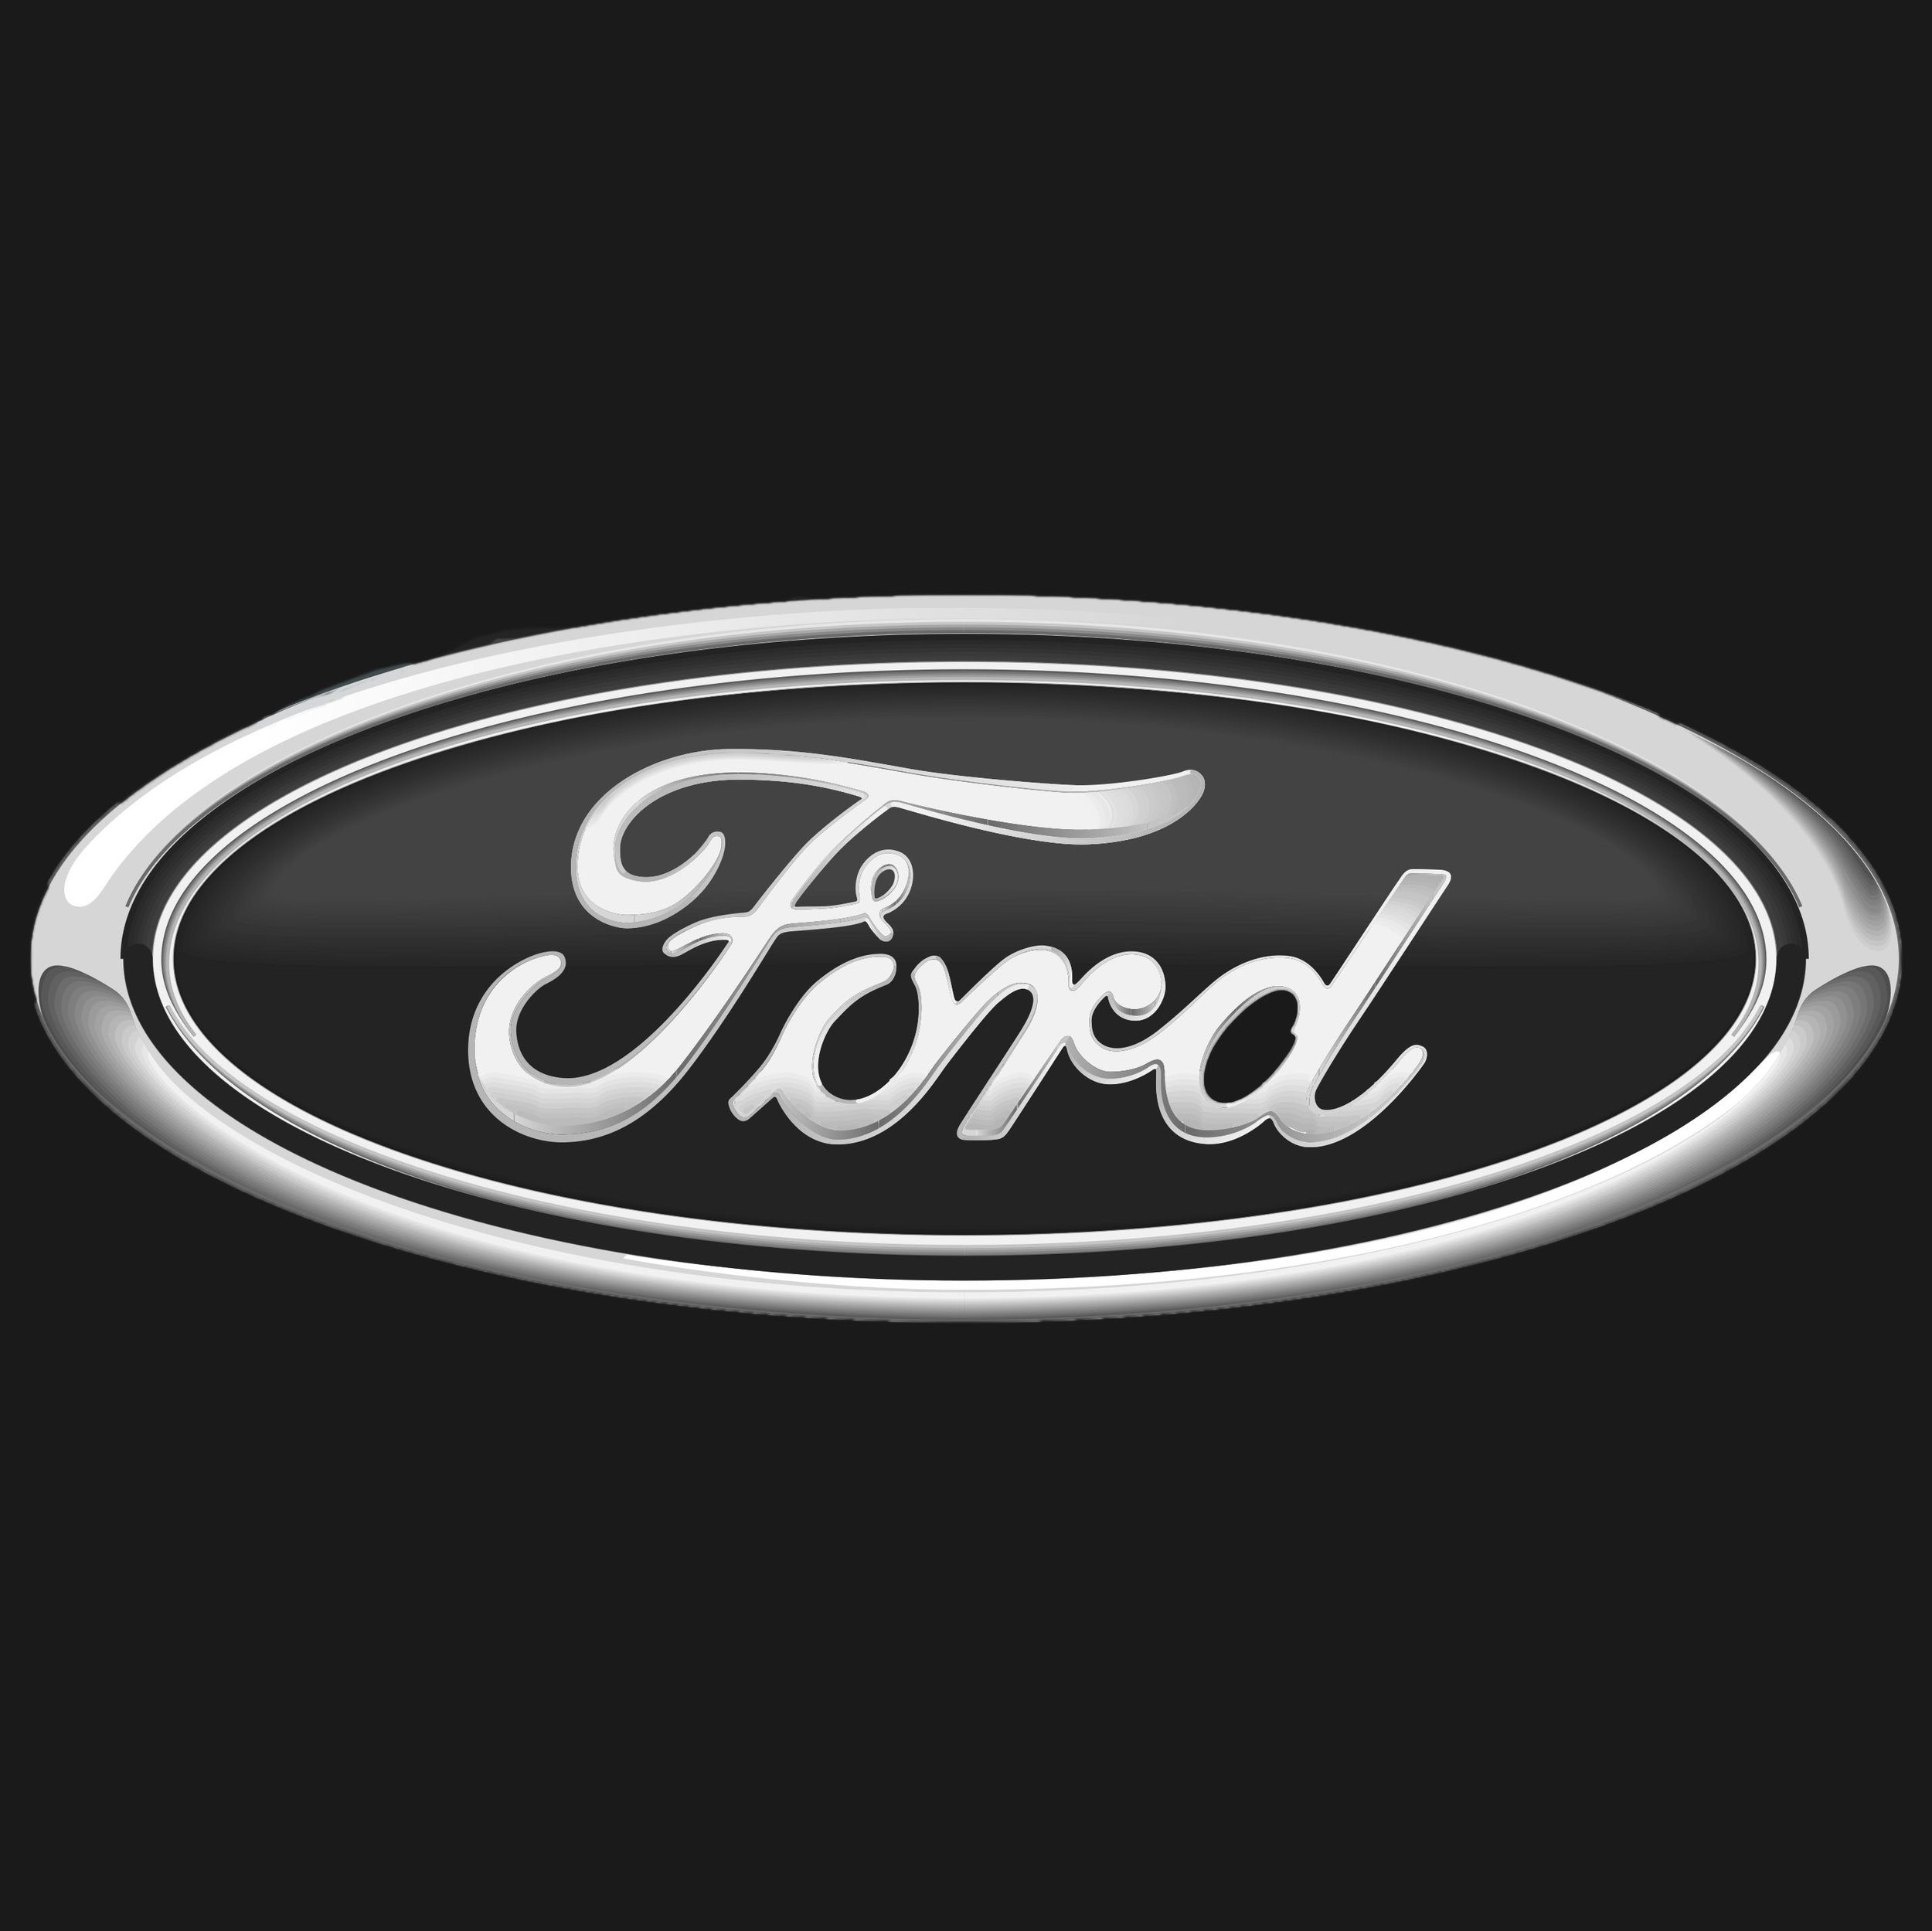 FreeVector-Ford-Logo.ai